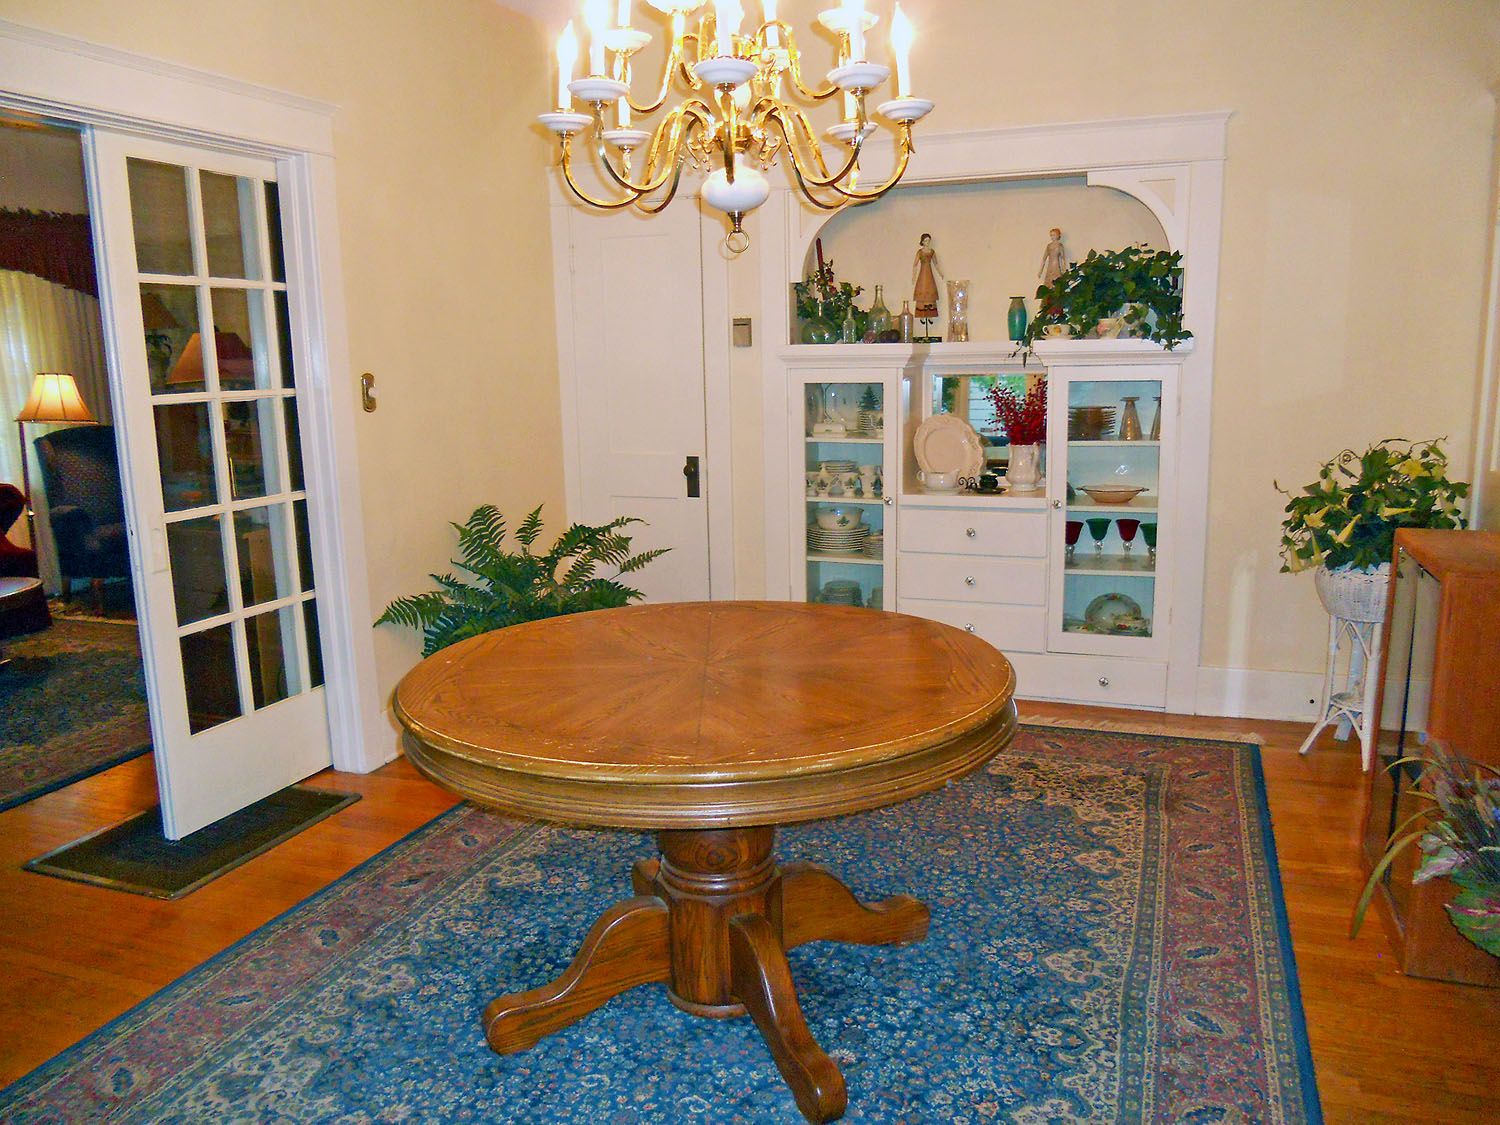 Formal dining room with original hardwood floors (old floor furnace that is no longer needed as this home now has central air/heat) and a built-in China hutch.